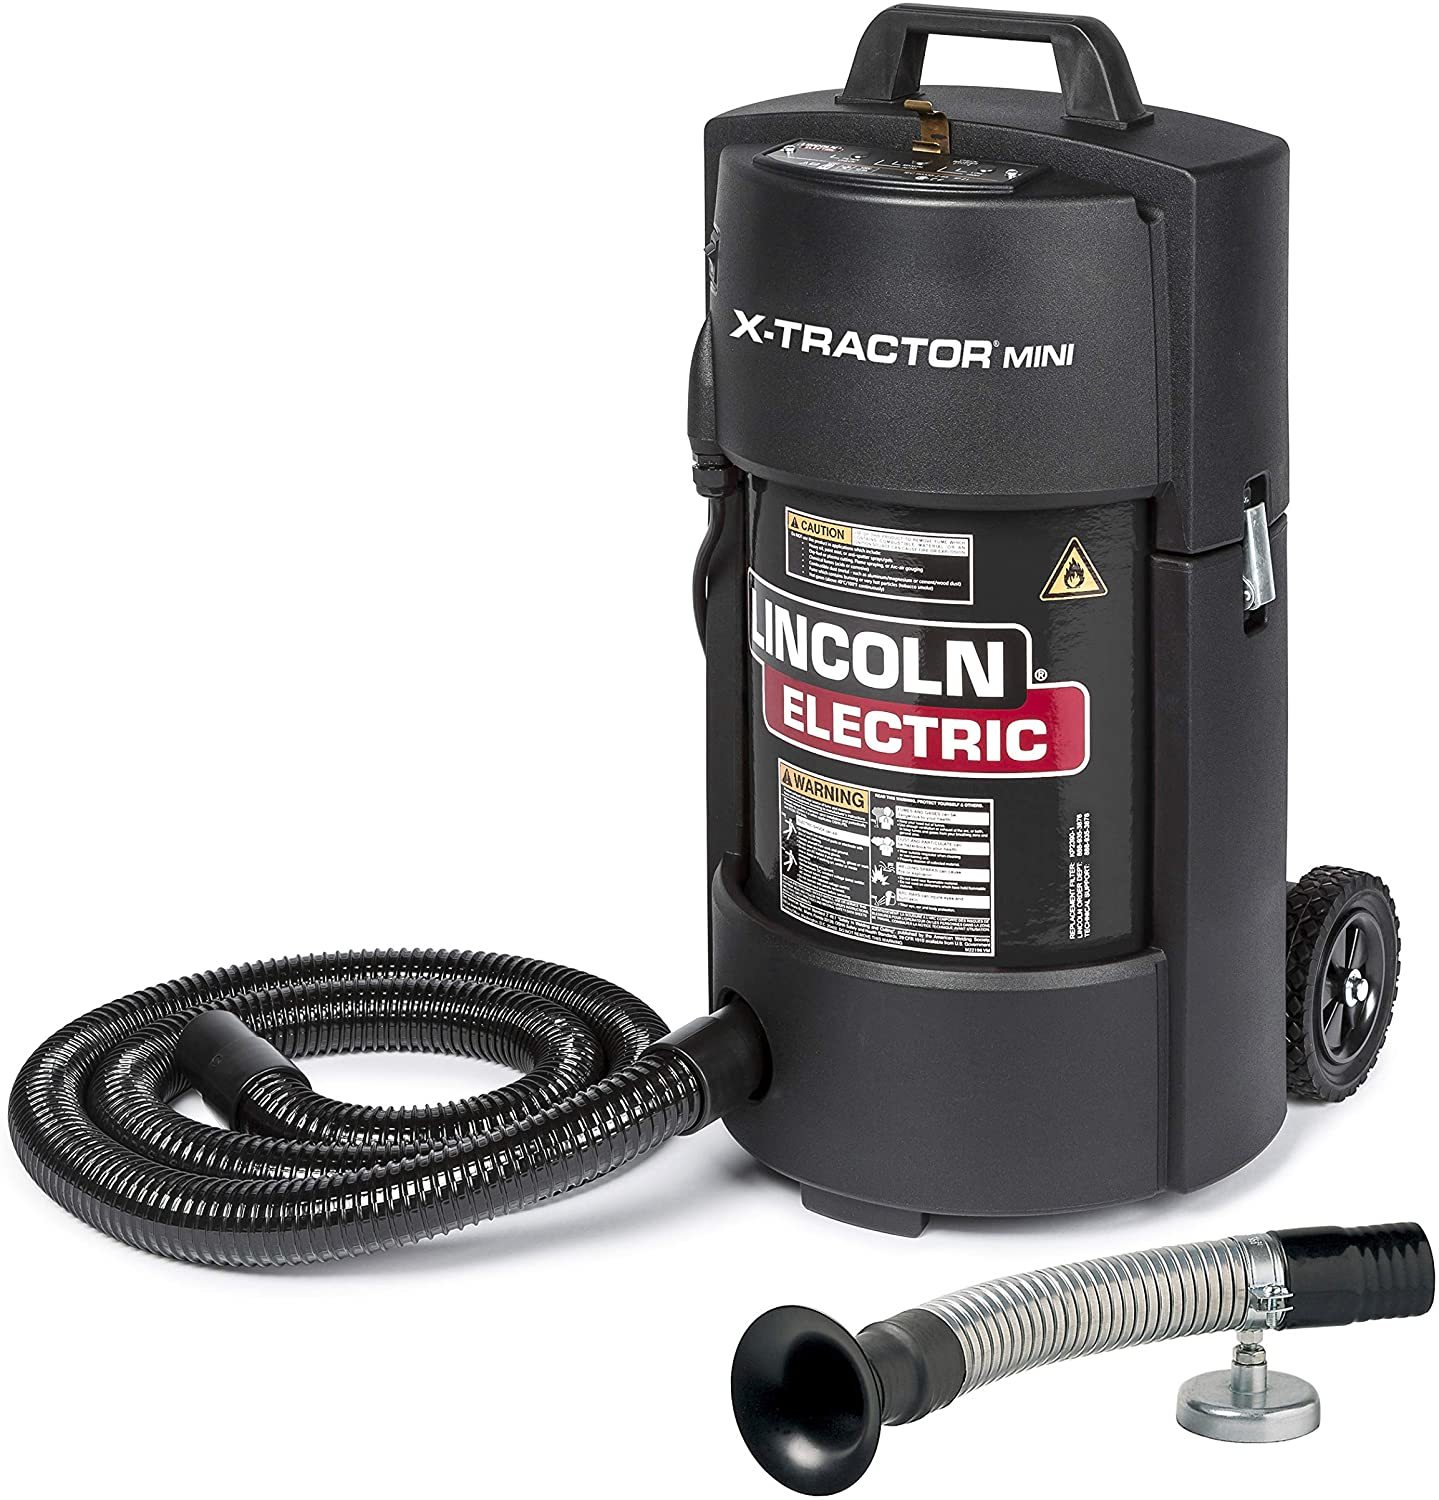 Lincoln Electric X-Tractor Mini Fume Extractor